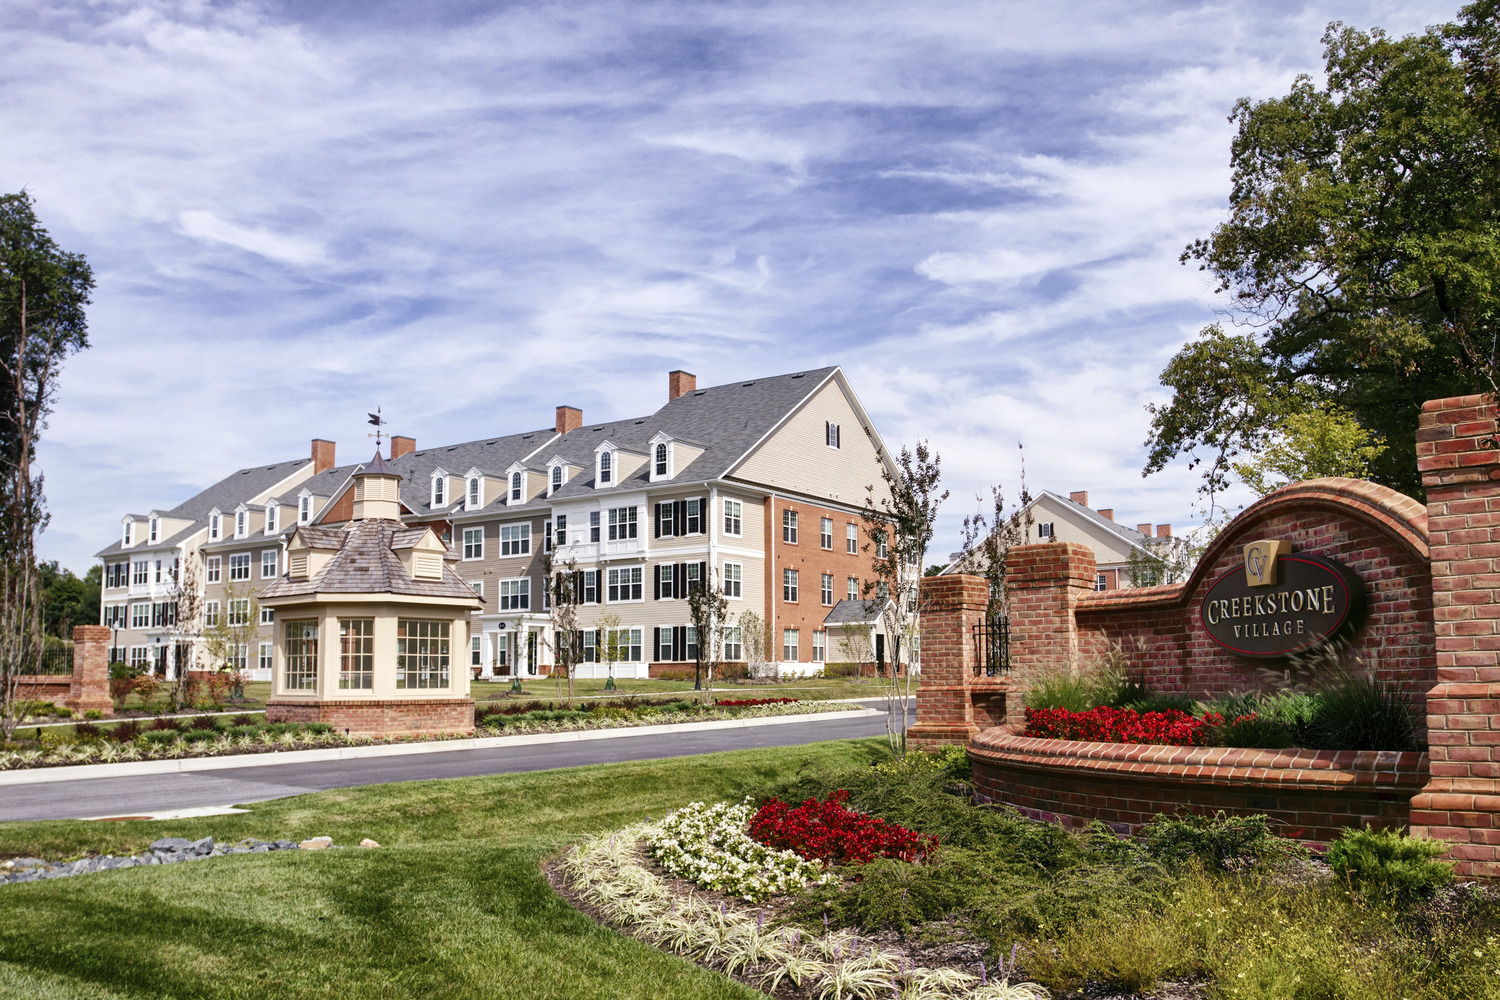 CBG builds Creekstone Village Apartments Phase II, a 156 Garden-Style Apartments and Townhomes with Recreation Center in Pasadena, MD - Image #1